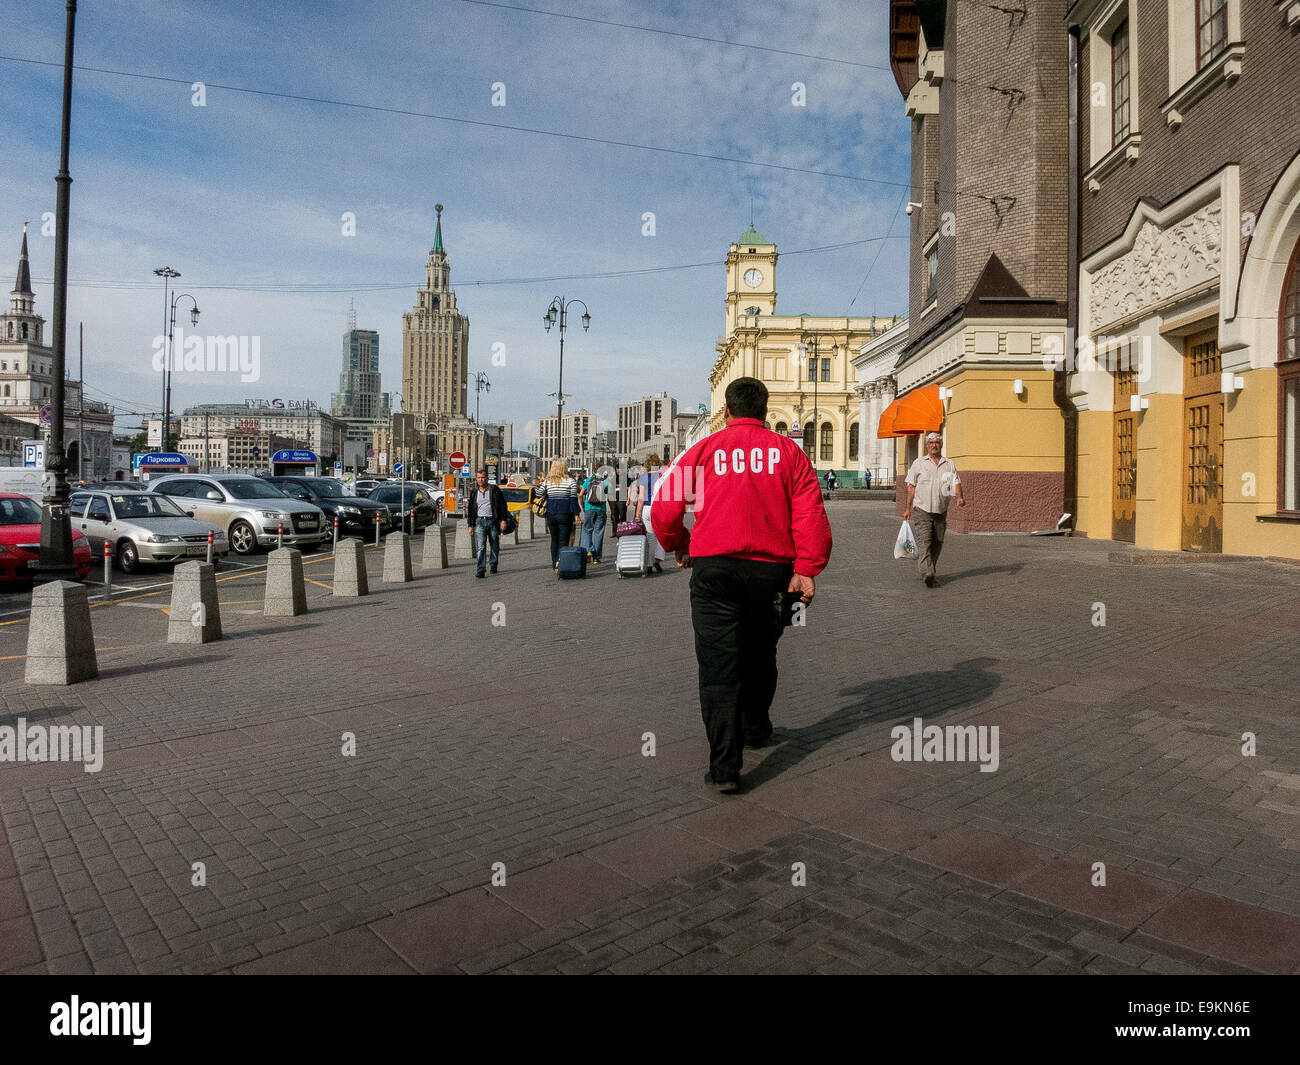 A man wearing a red jacket with Soviet emblem CCCP walking on the street in Moscow. - Stock Image